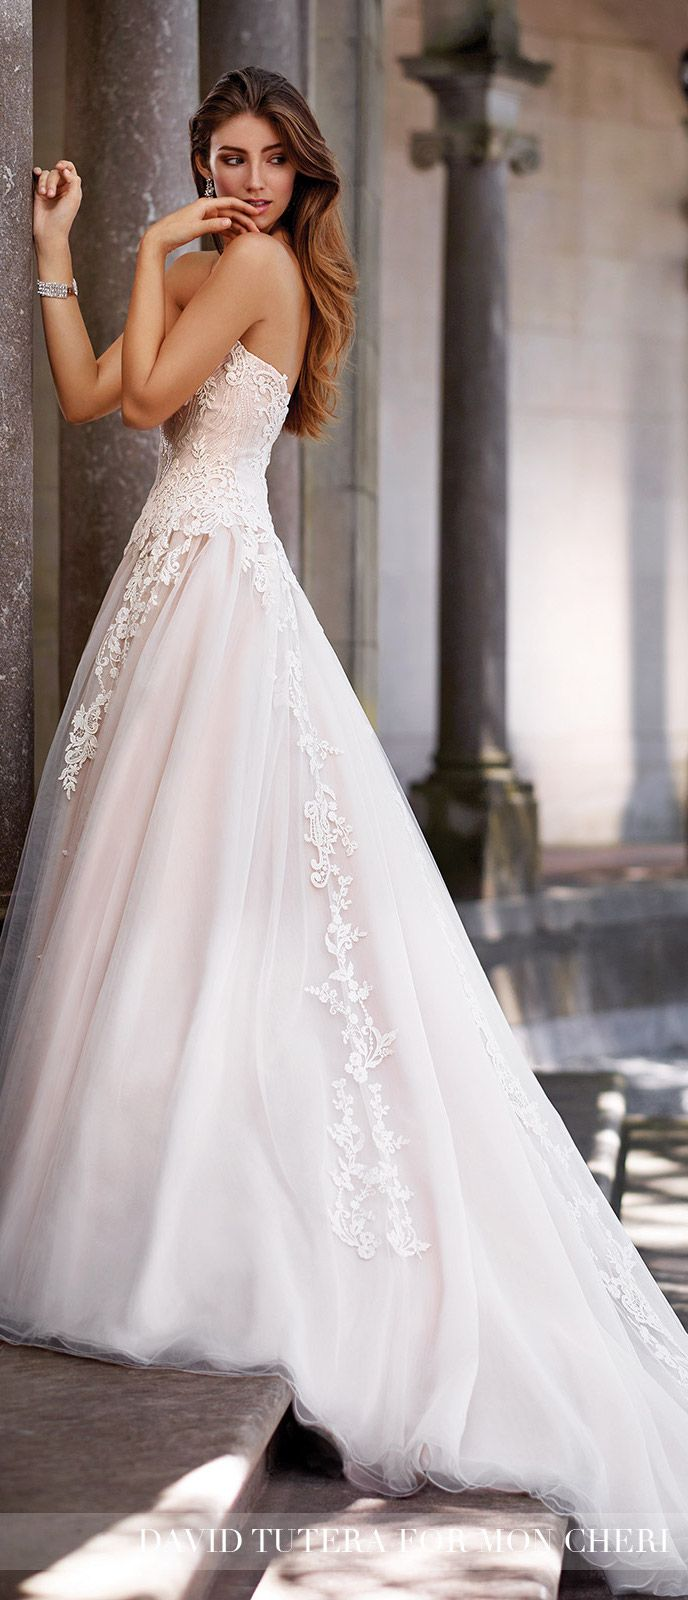 Different color wedding dresses   best wedding dress ideas images on Pinterest  Short wedding